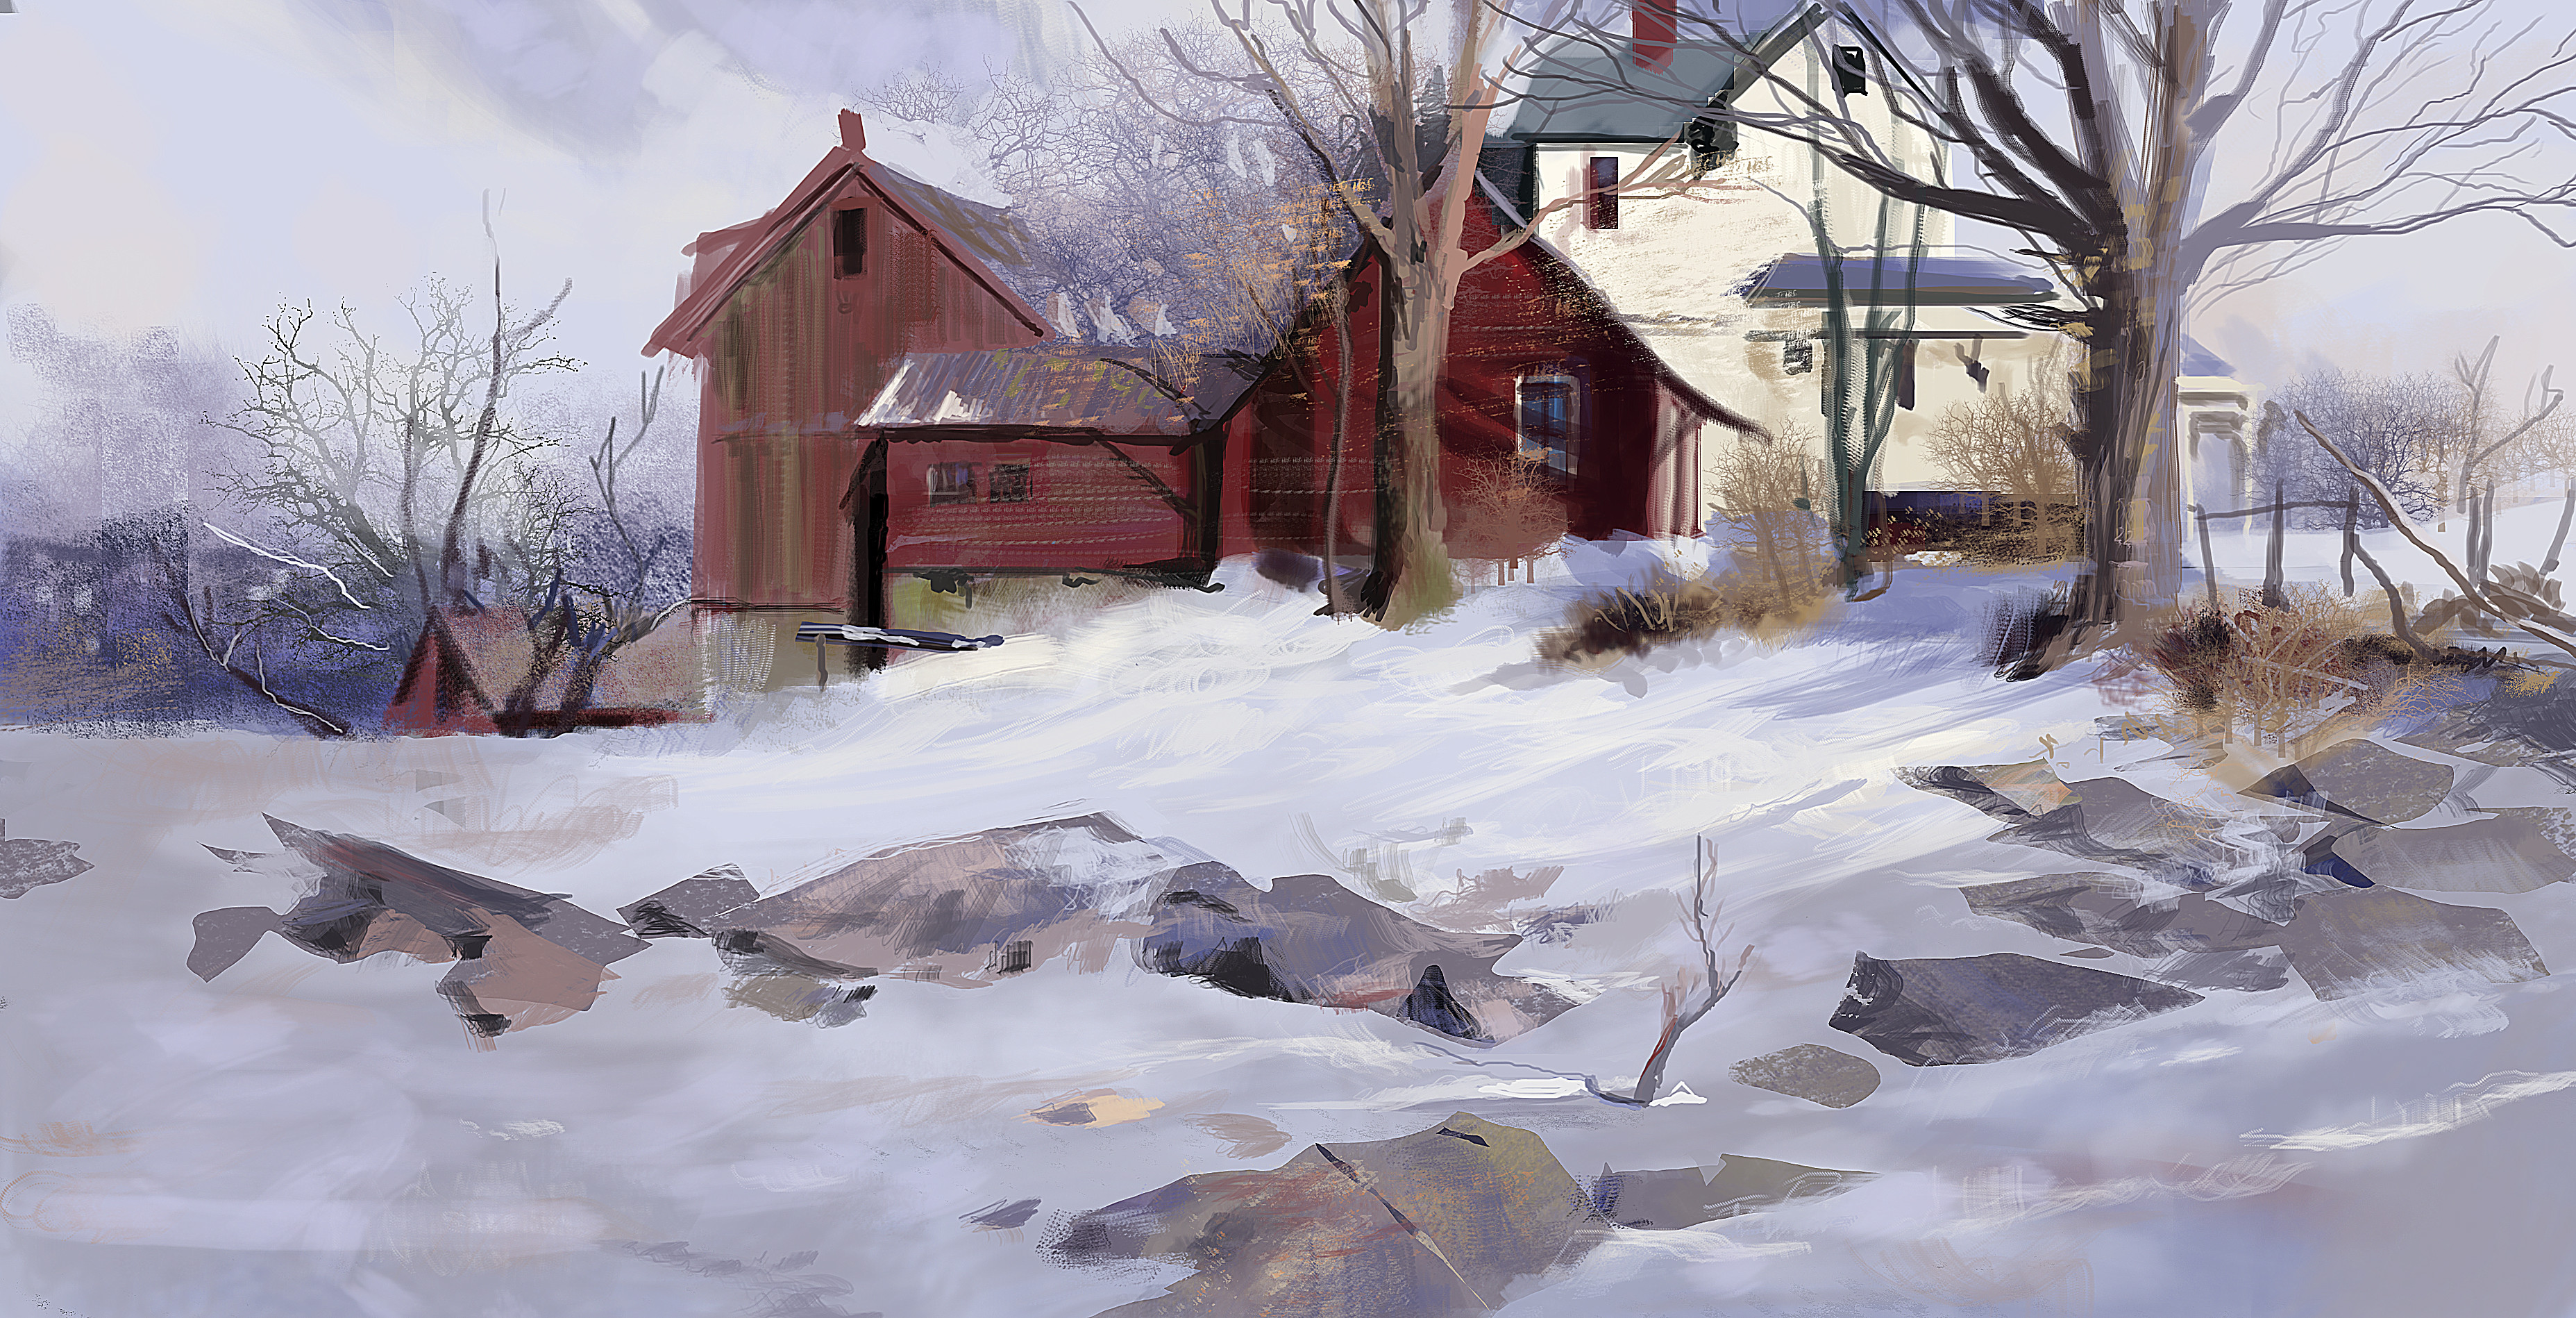 Study on Richard Schmid painting. Very nice exercise